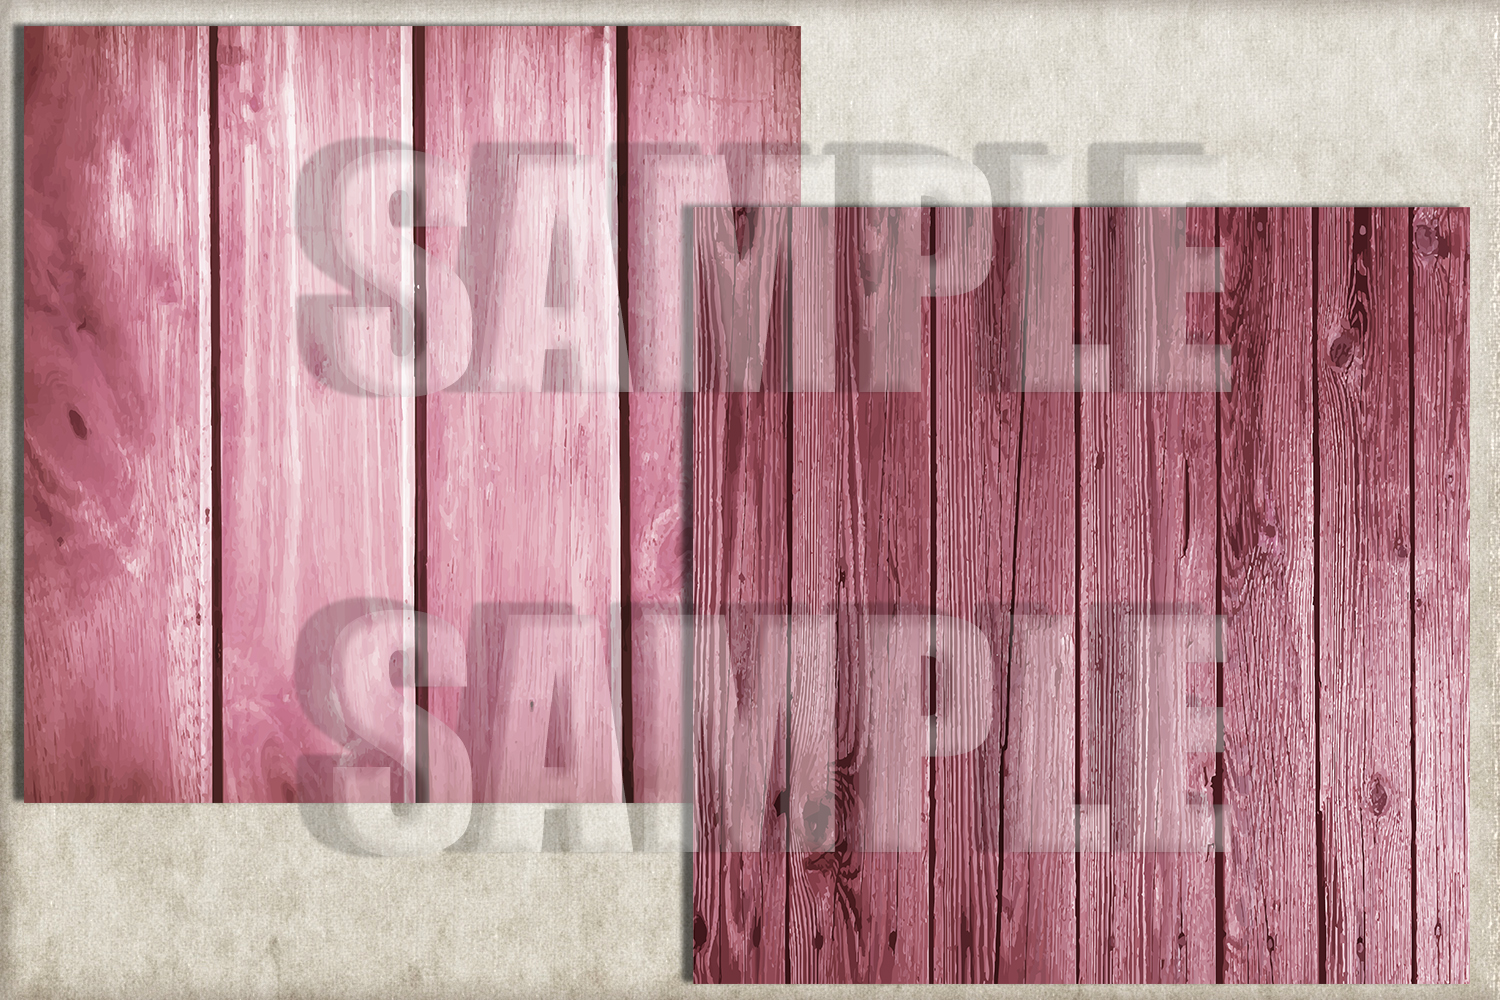 Pink Rustic Wood Digital Paper, Digital Background example image 3